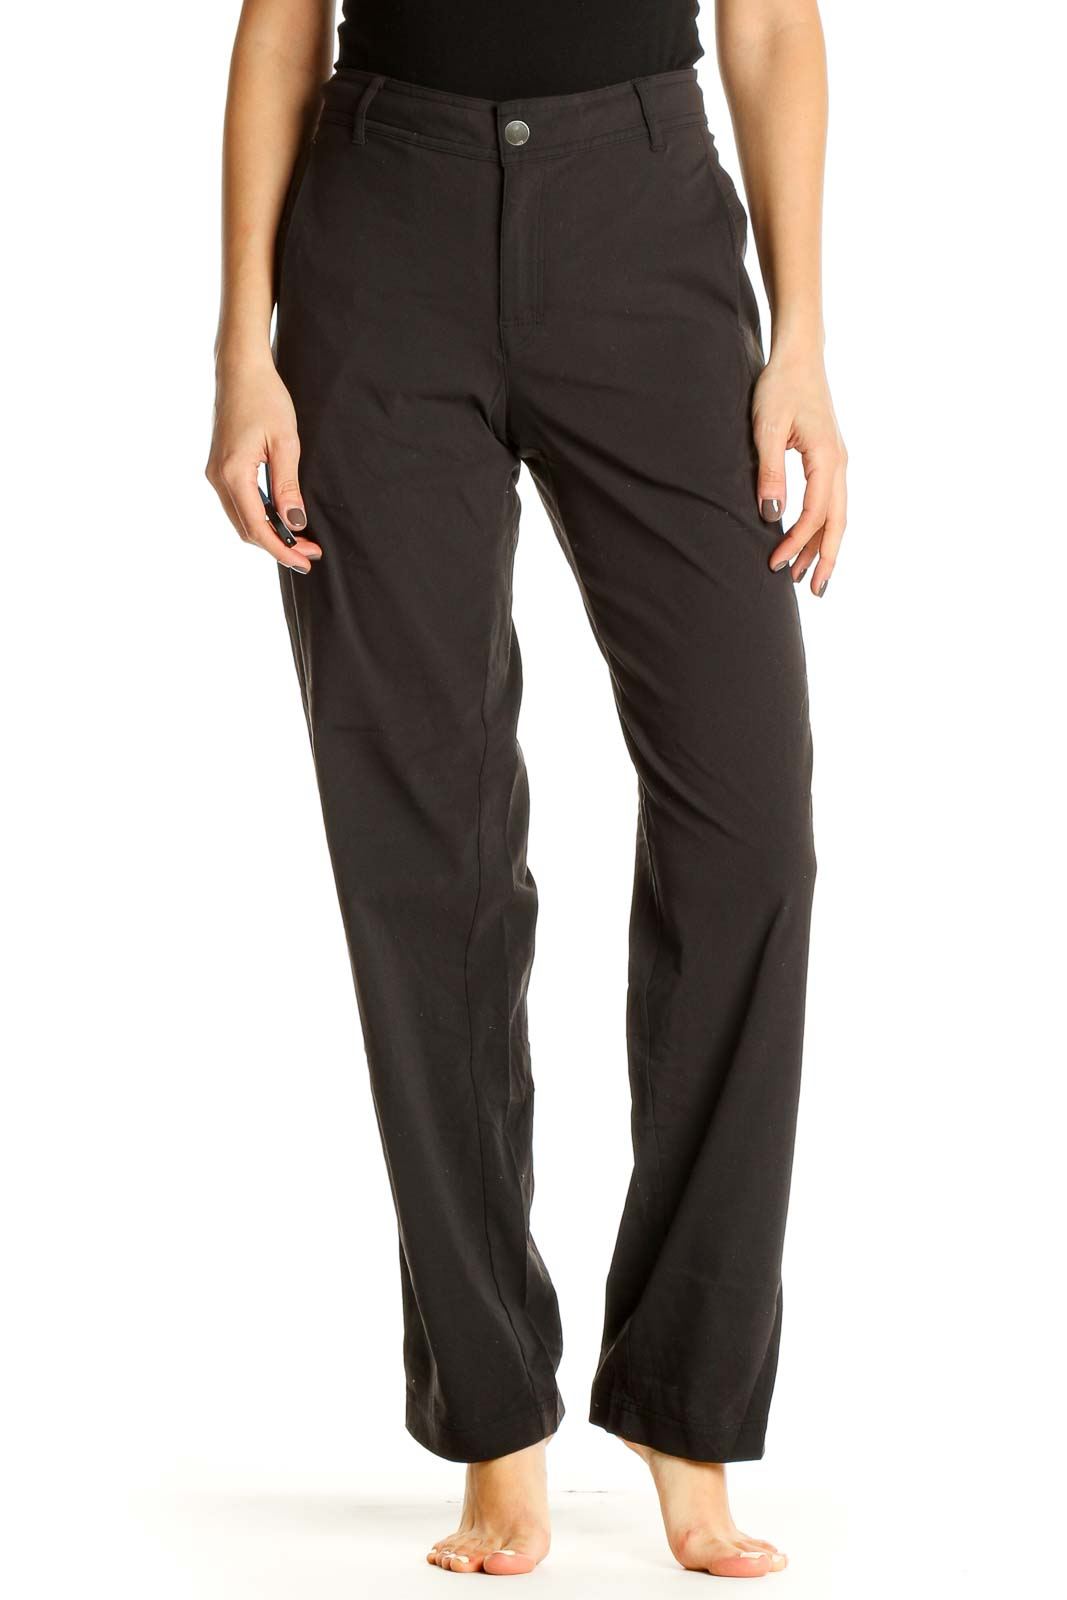 Black Solid All Day Wear Trousers Front